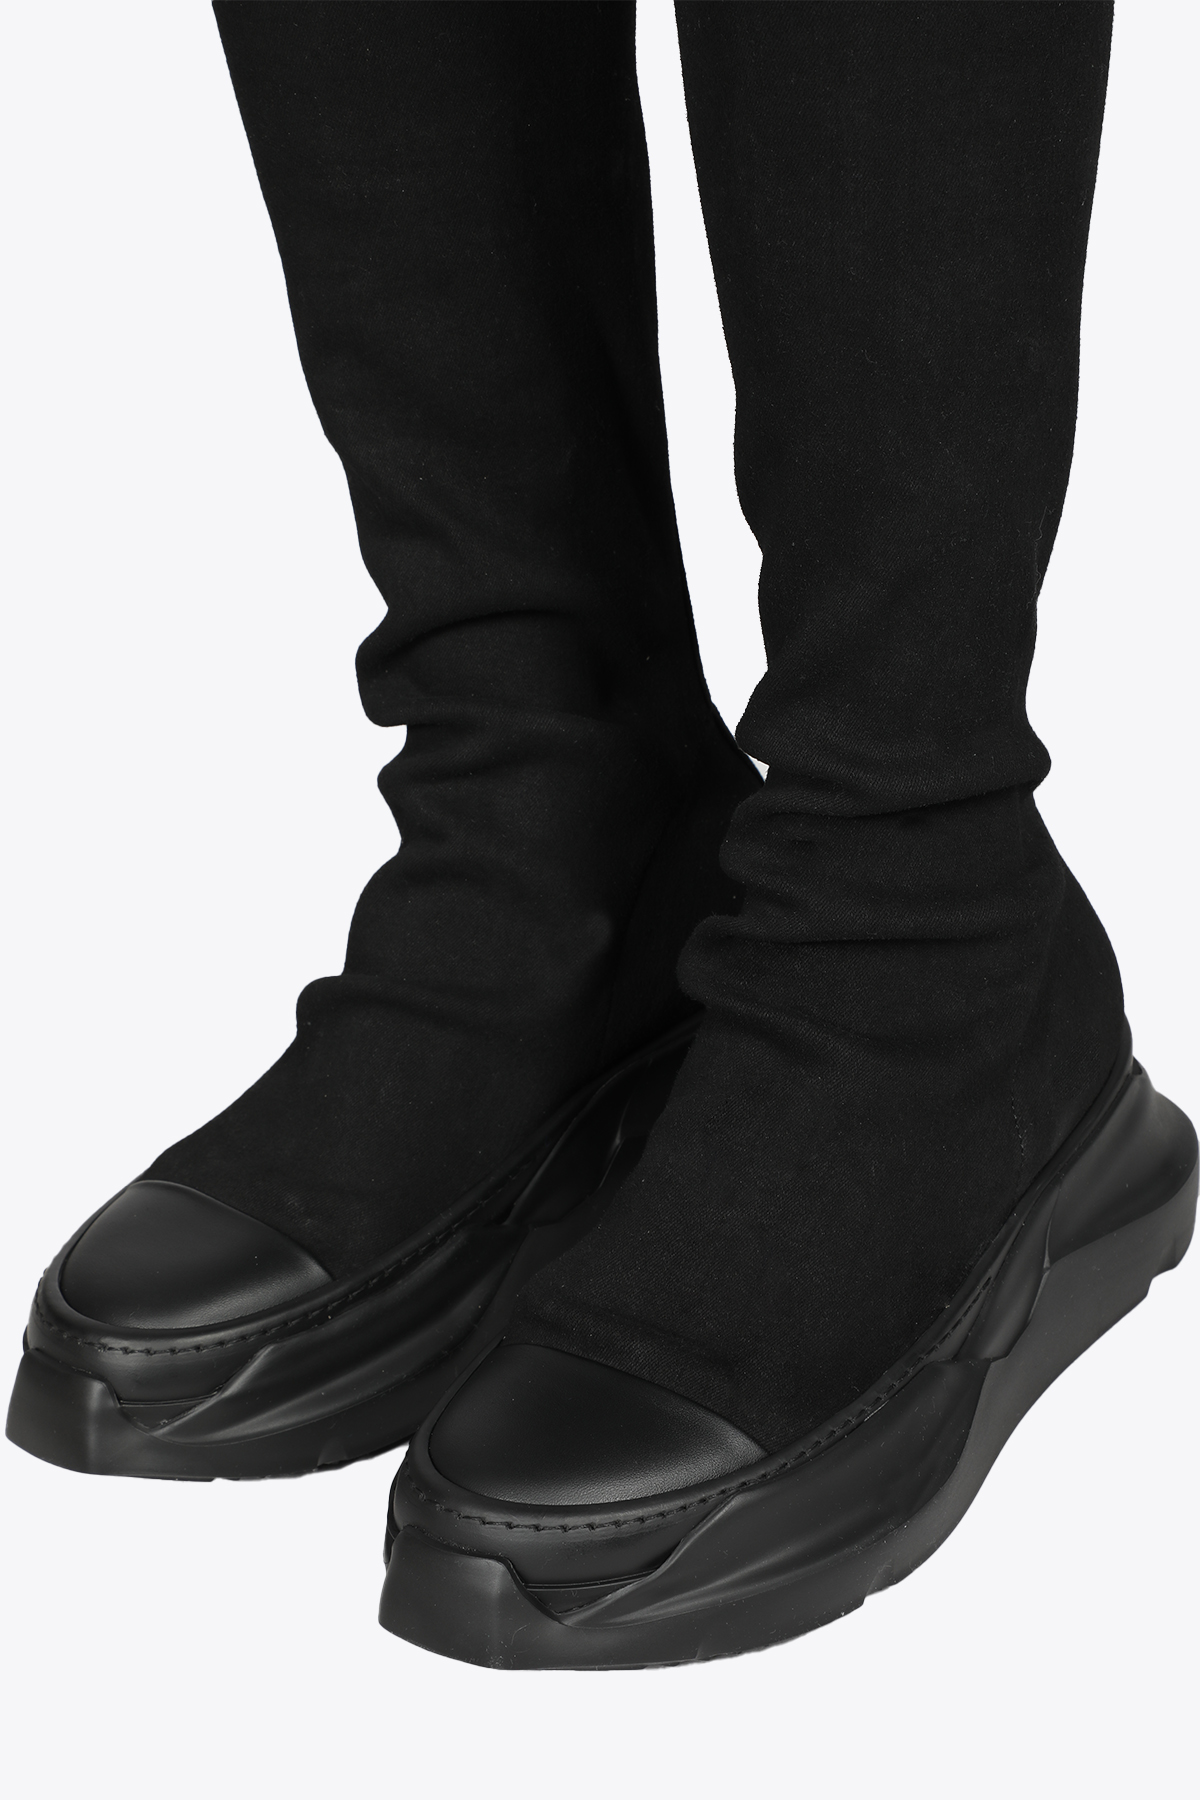 abstract stockings RICK OWENS-DRKSHDW | 10000039 | DS02A3841 SBB ABSTRACT STOCKINGS999